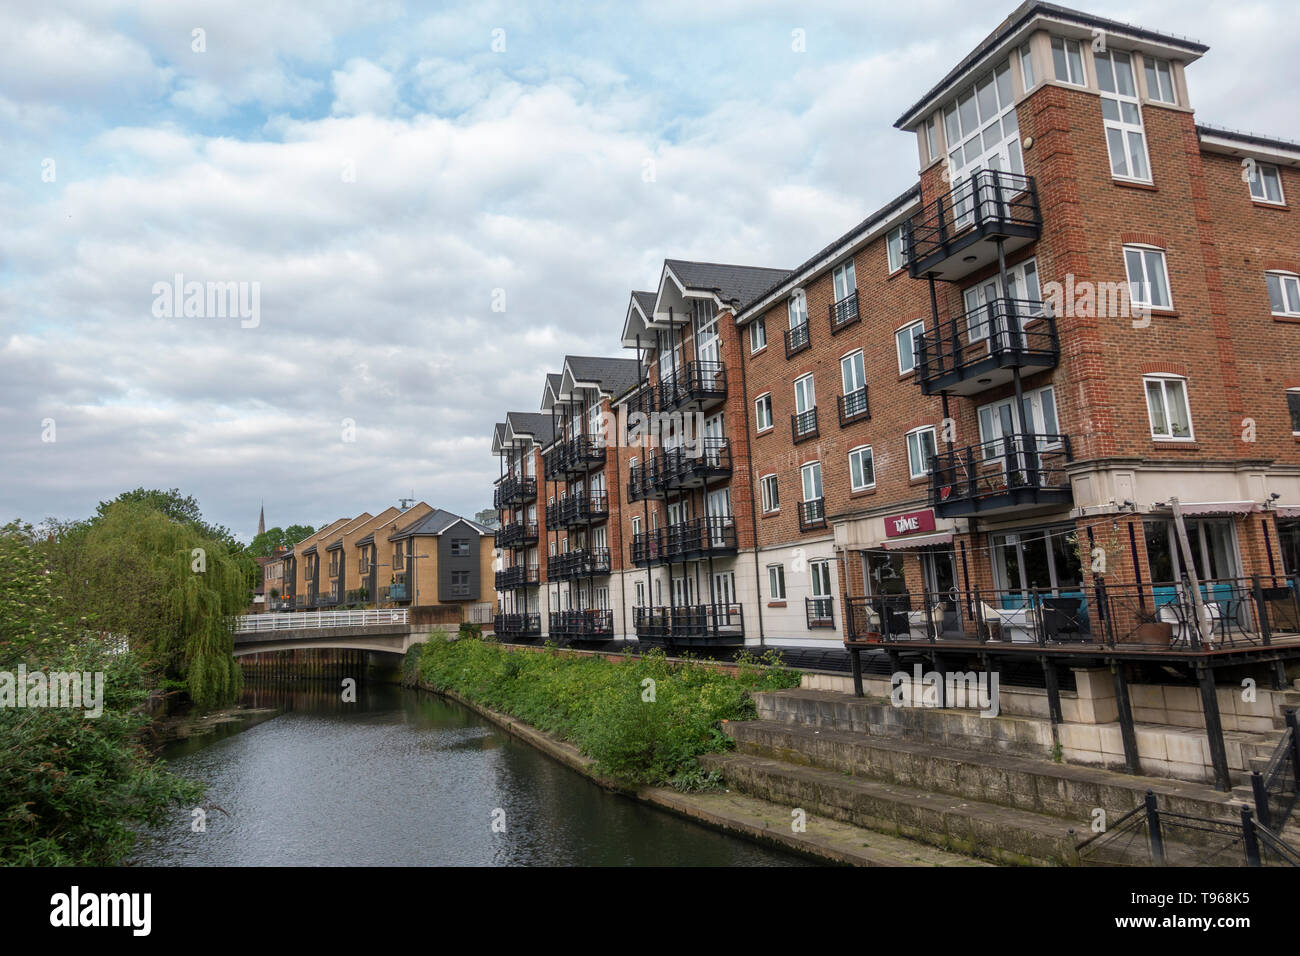 General view of Brentford Lock West housing development on the River Brent, West London, UK. - Stock Image